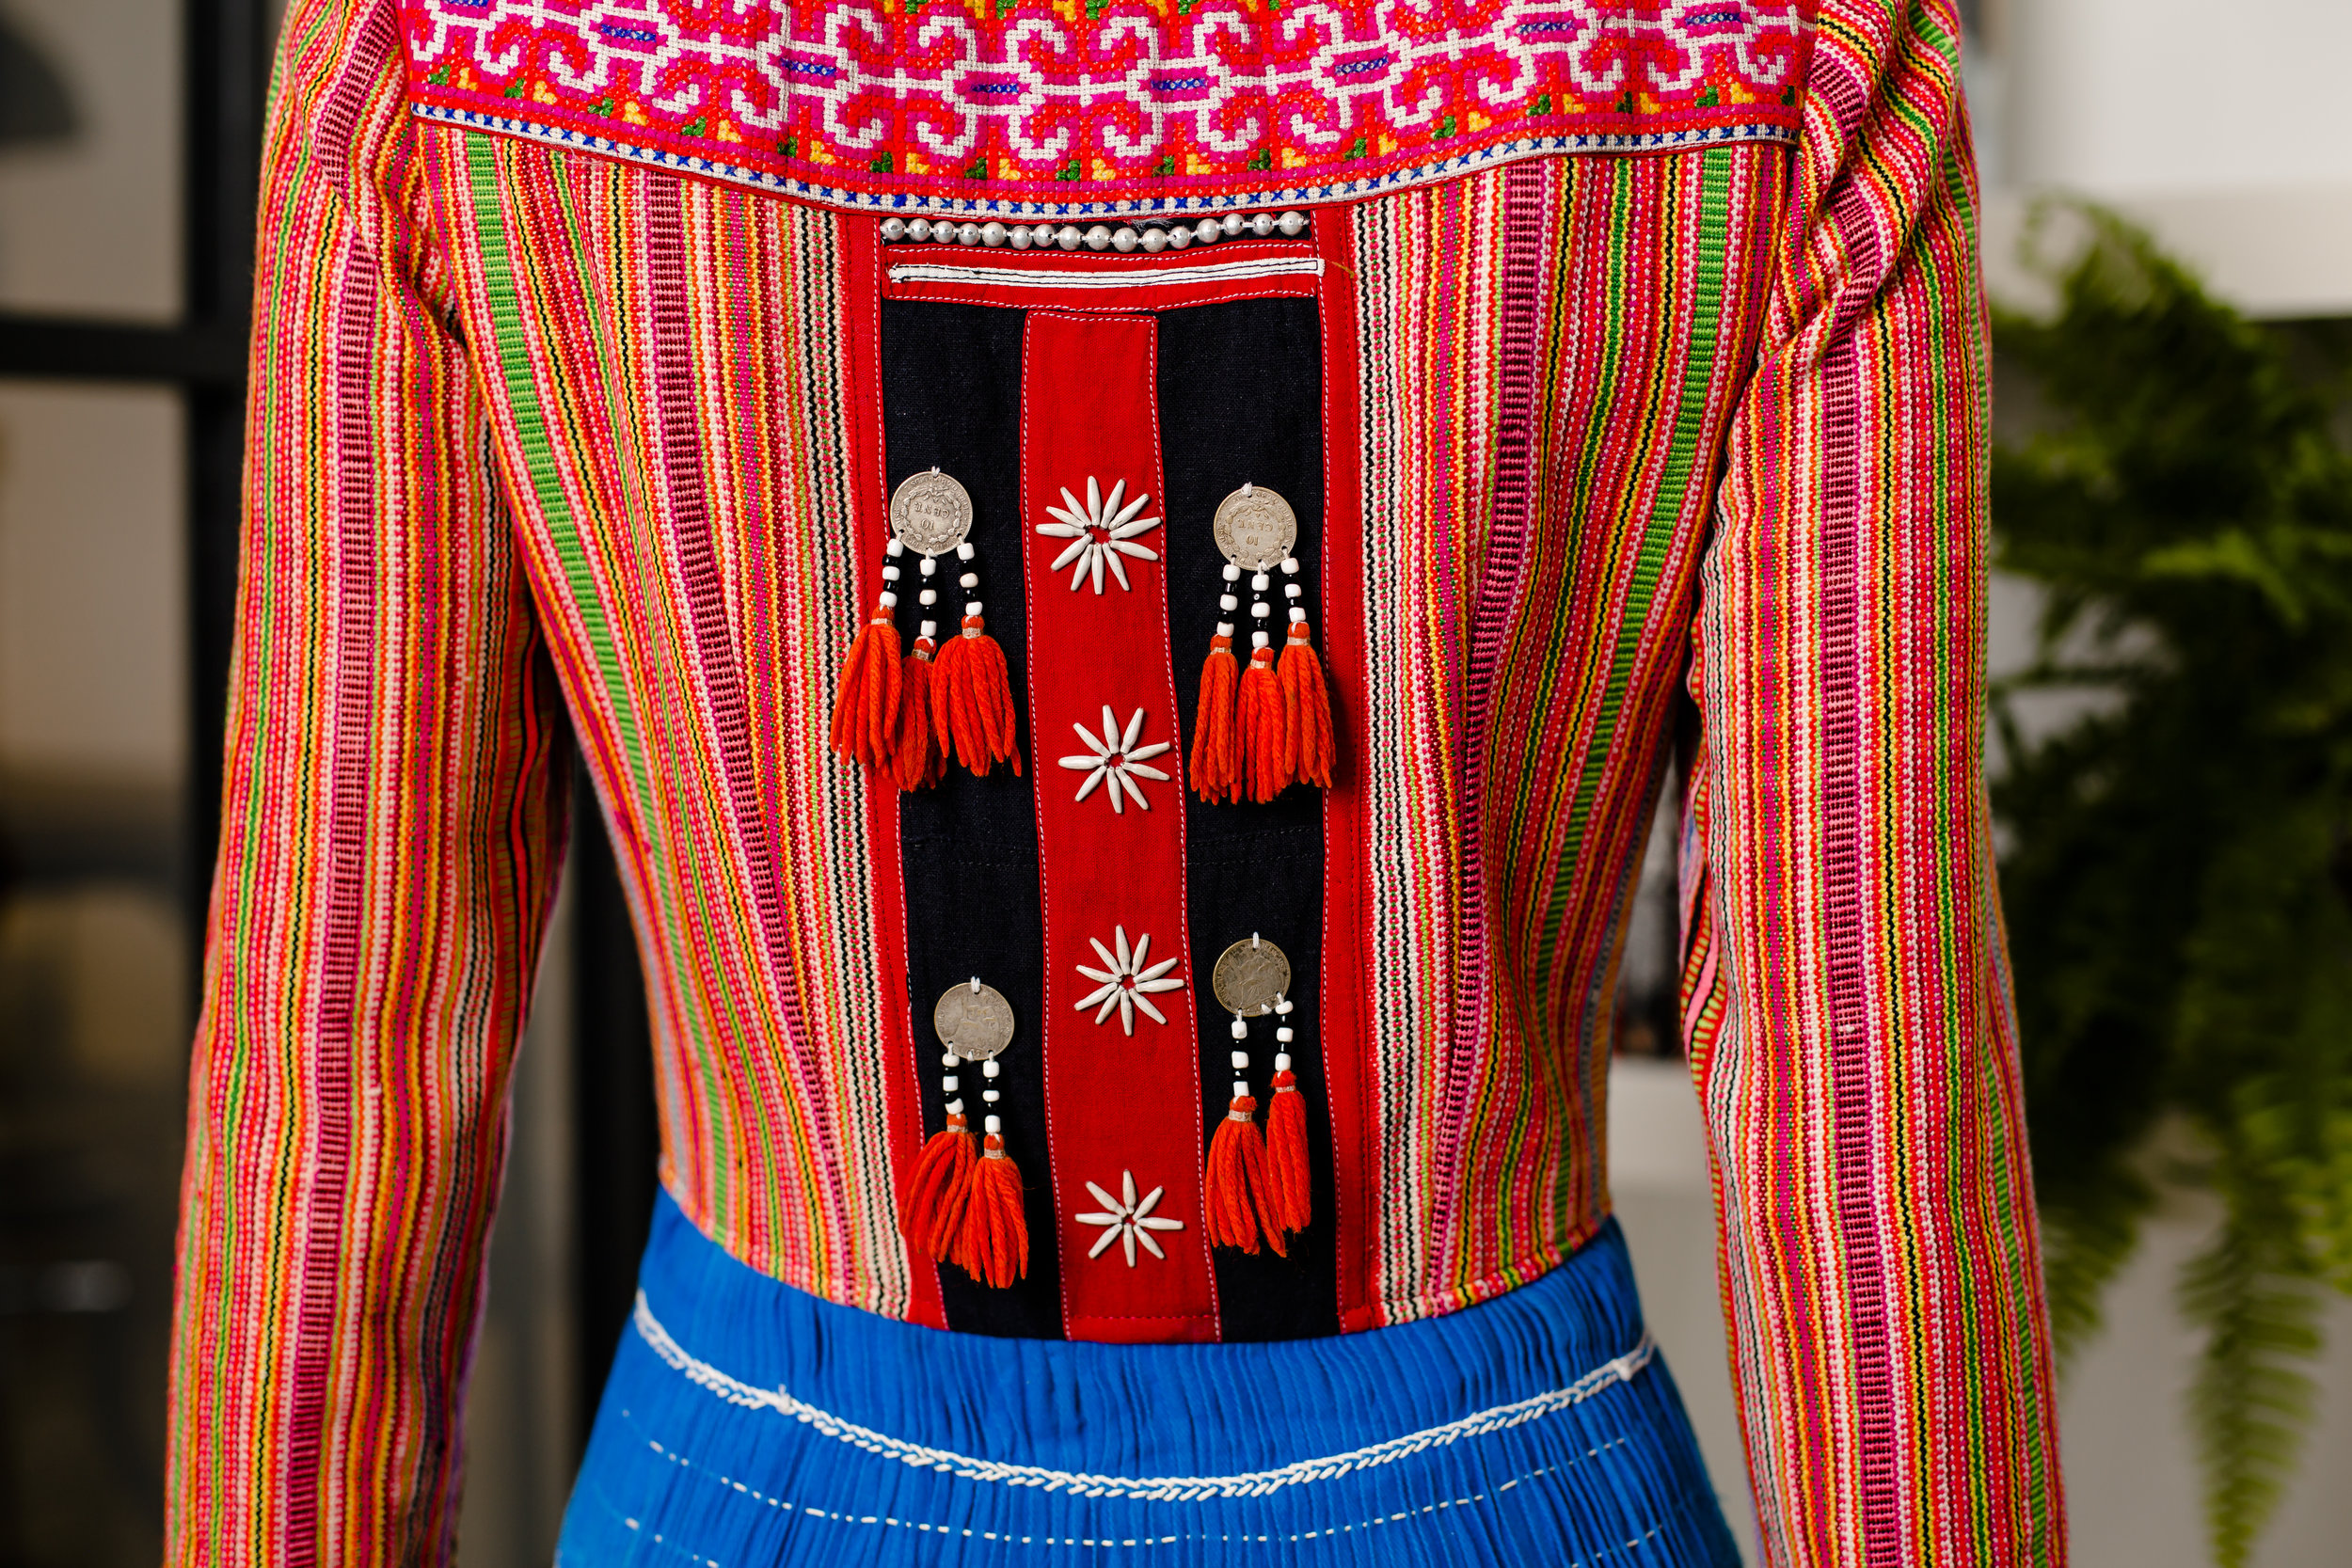 AW17: A Hmong Dress with a Clashing Bodice & Skirt